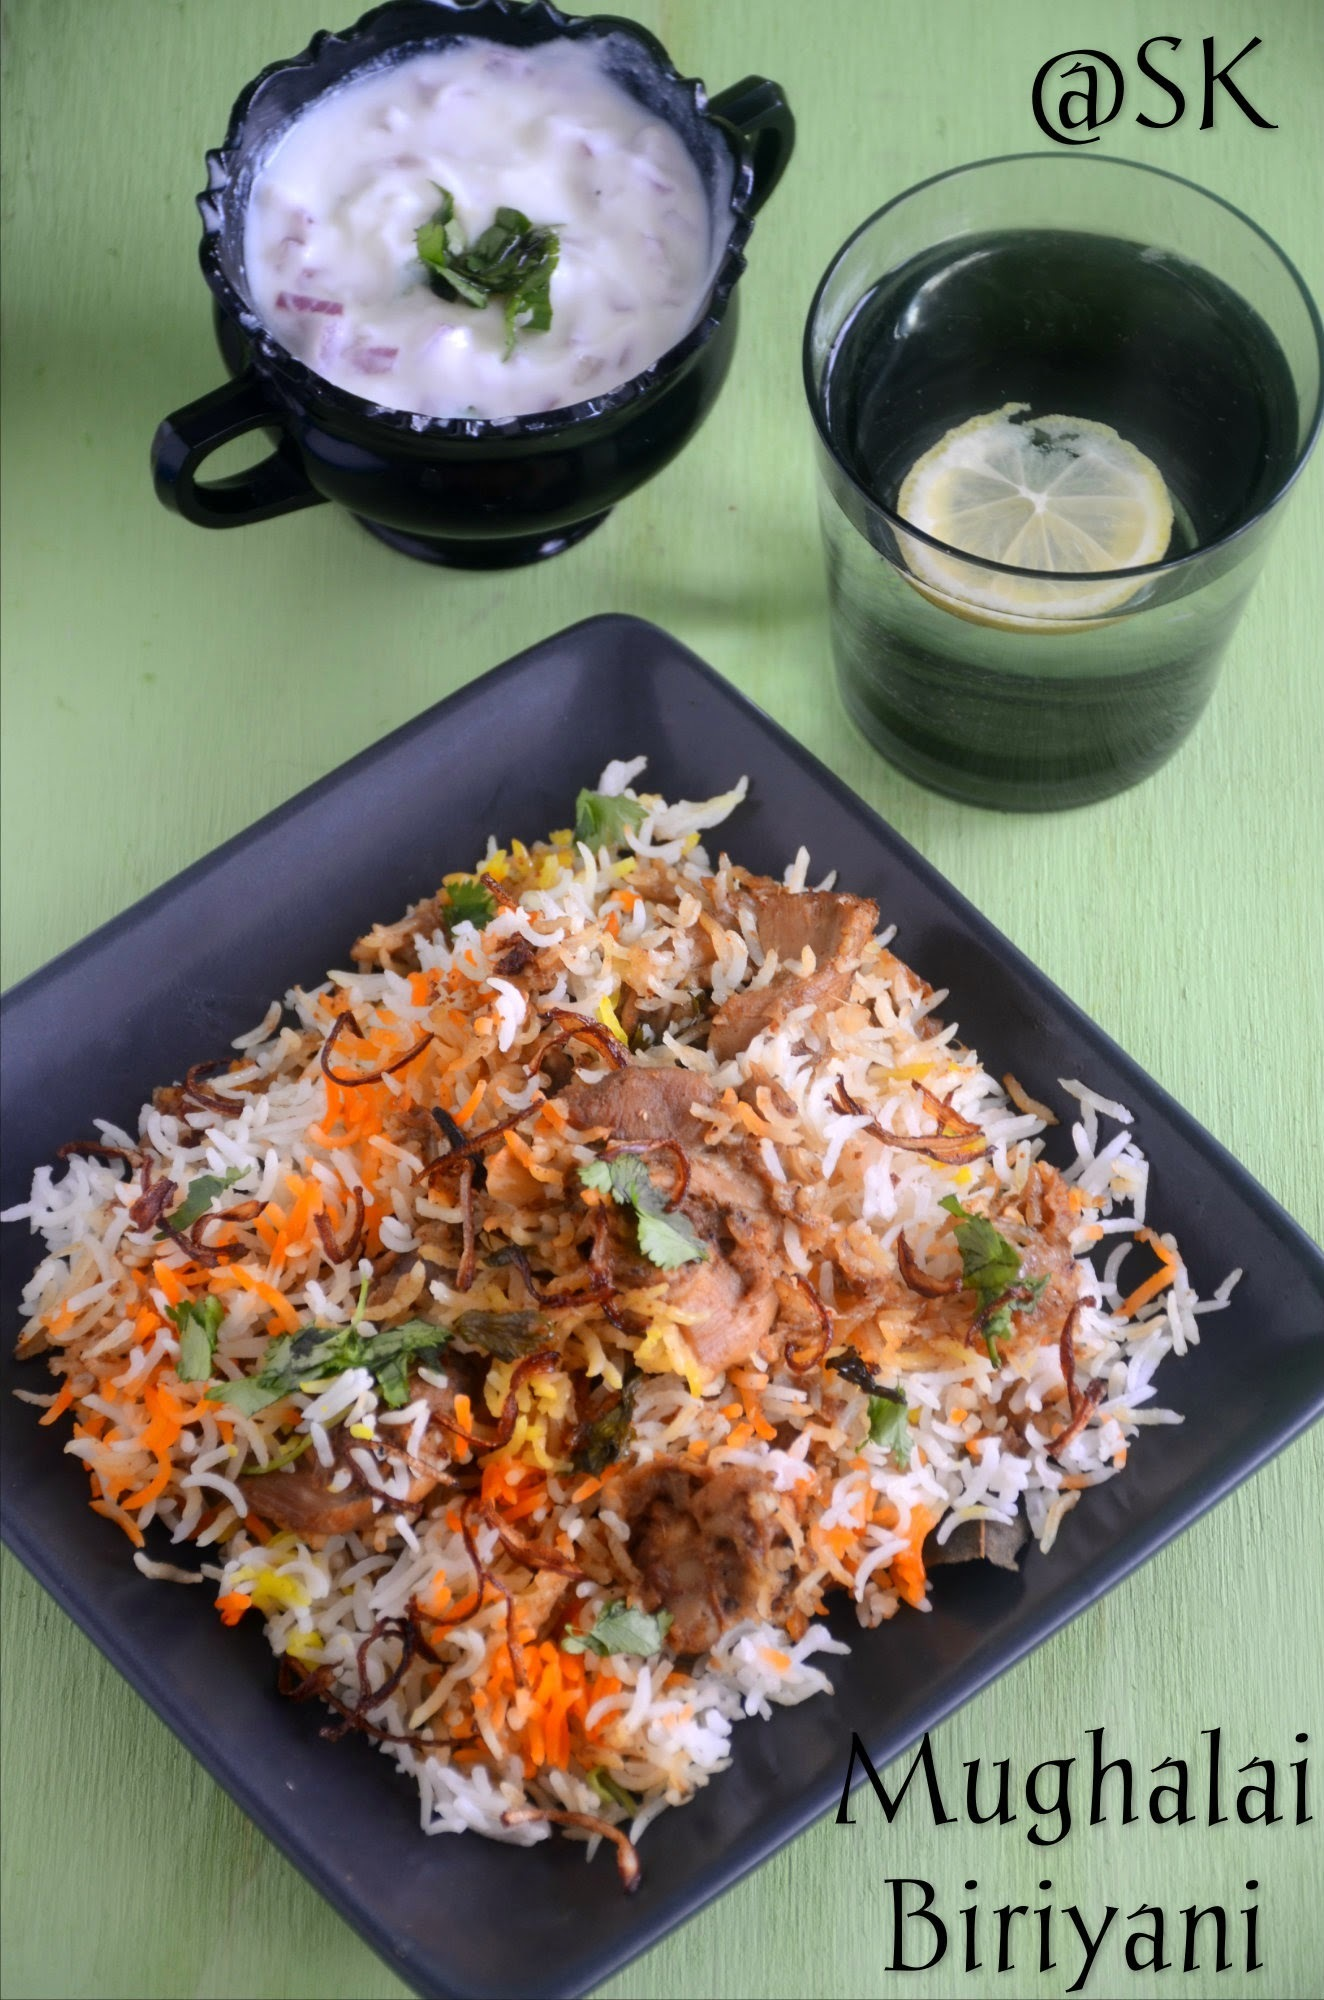 Mughalai Chicken Biriyani - Step by Step